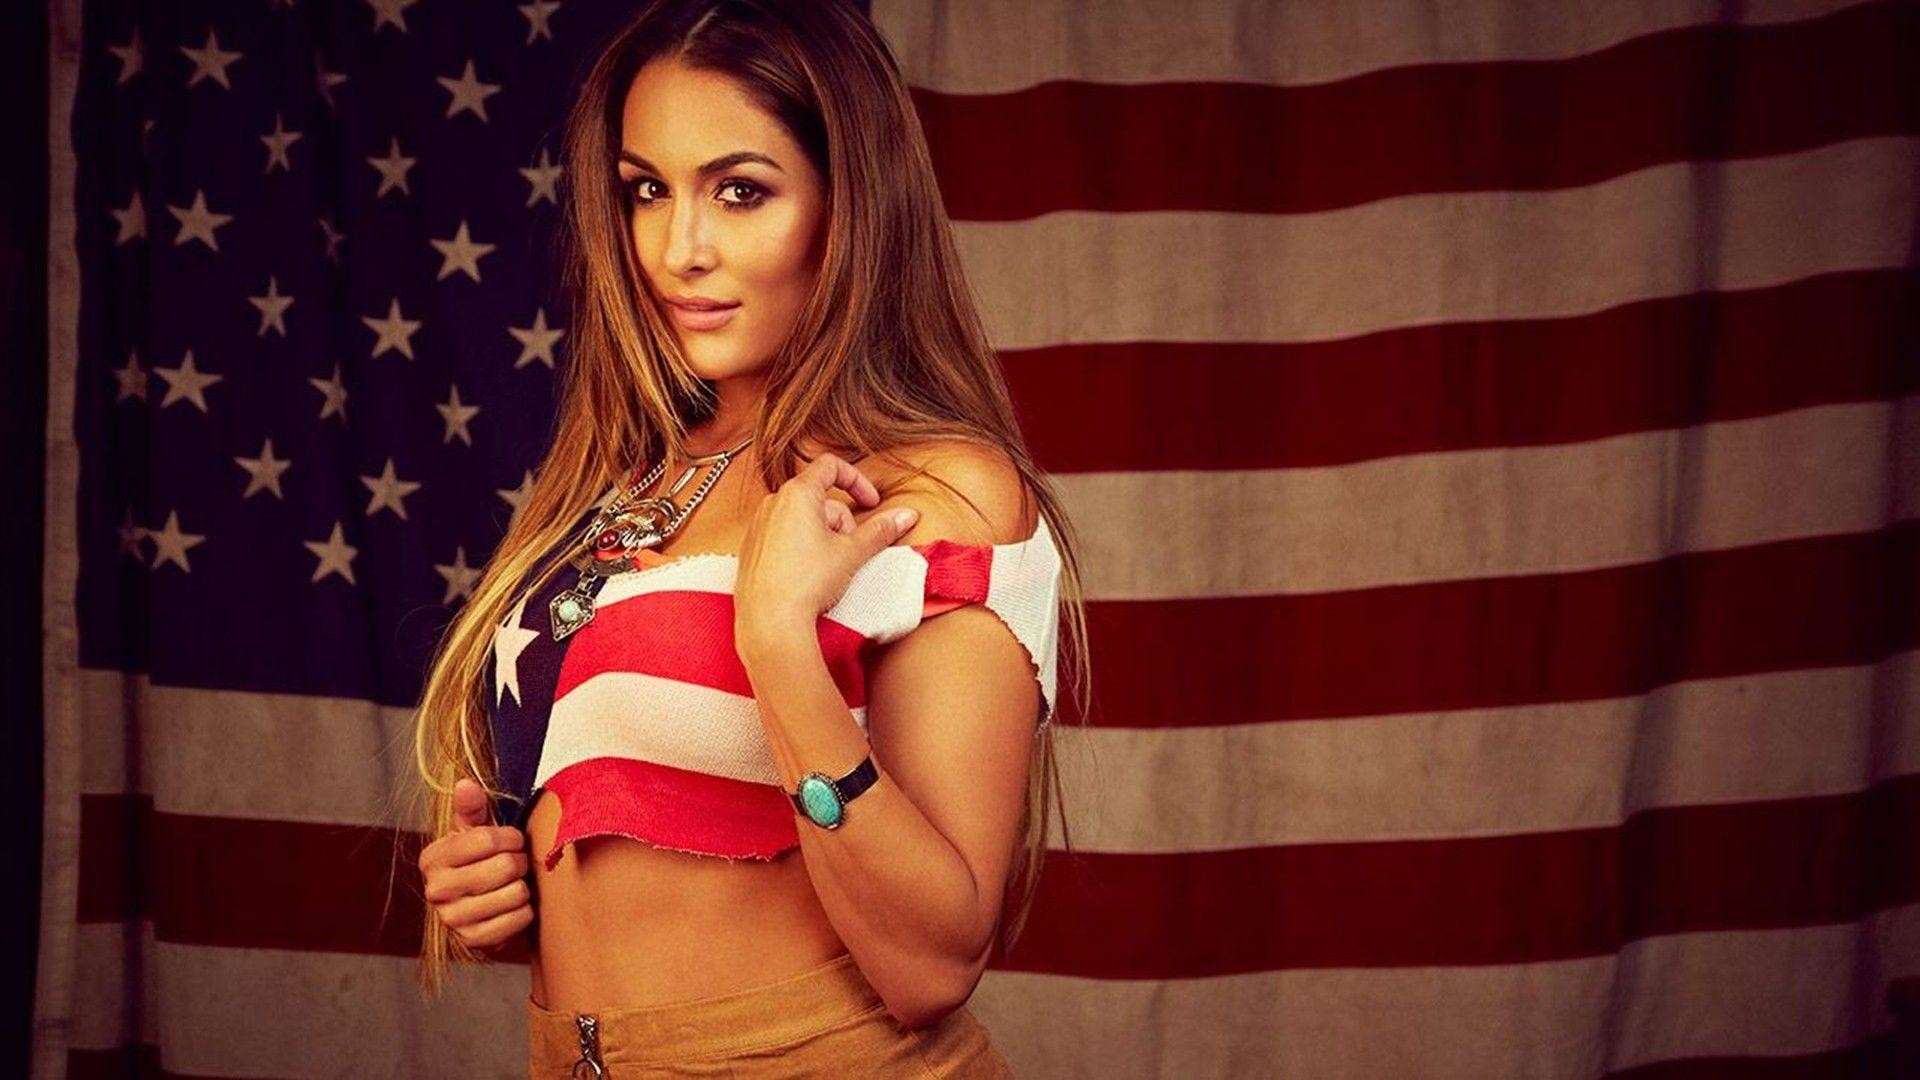 1920x1080 Nikki Bella Wallpapers HD Backgrounds, Images, Pics, Photos Free .